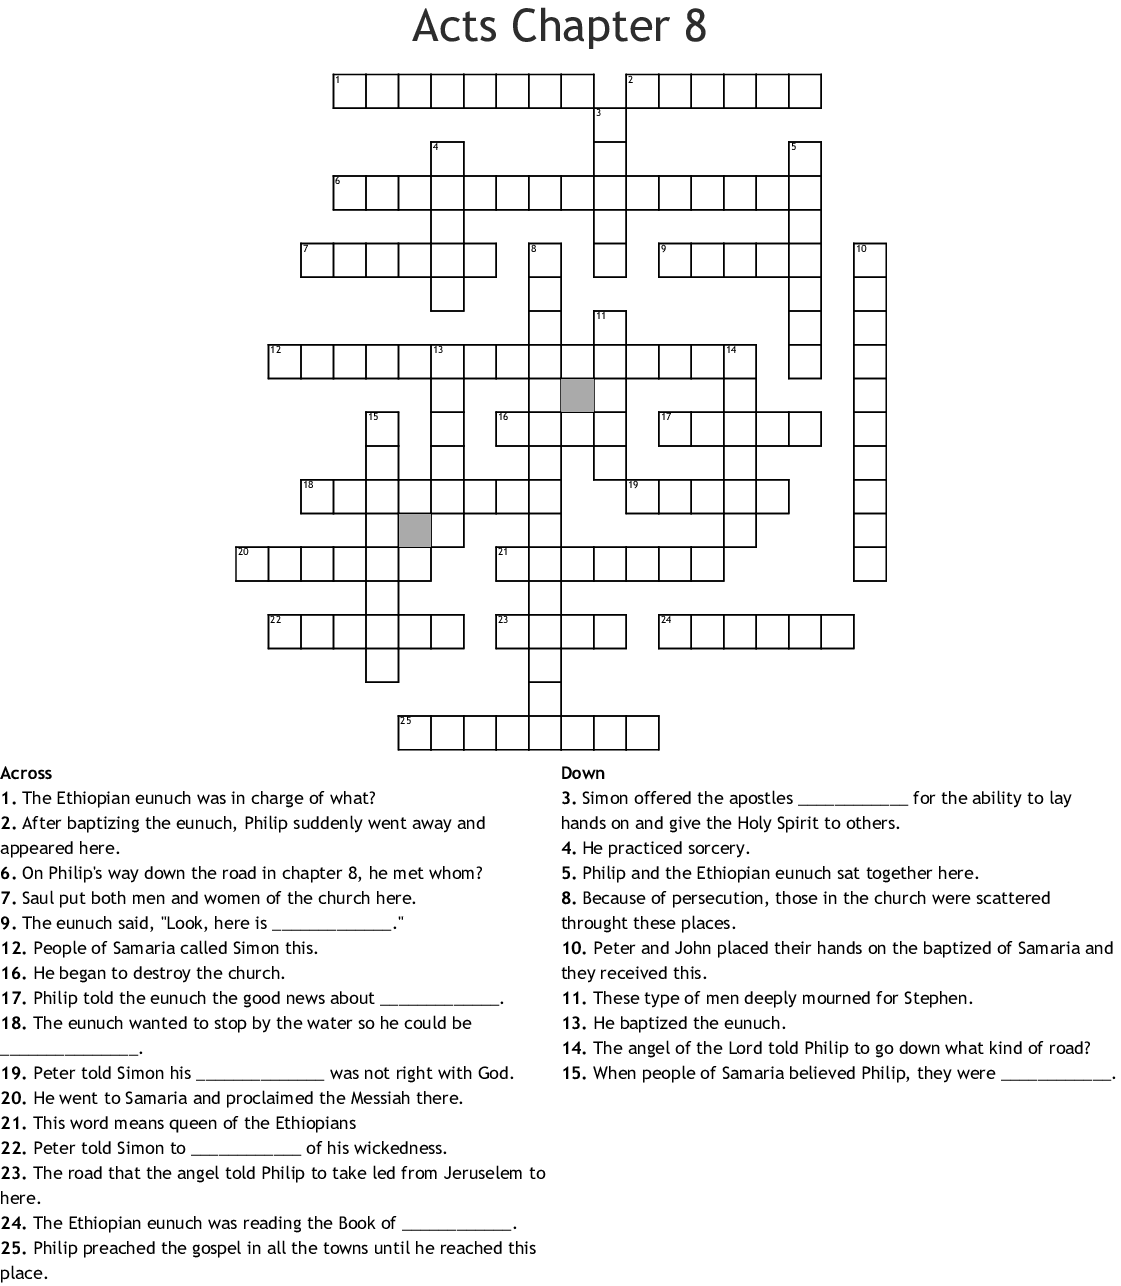 Acts Chapter 8 Crossword